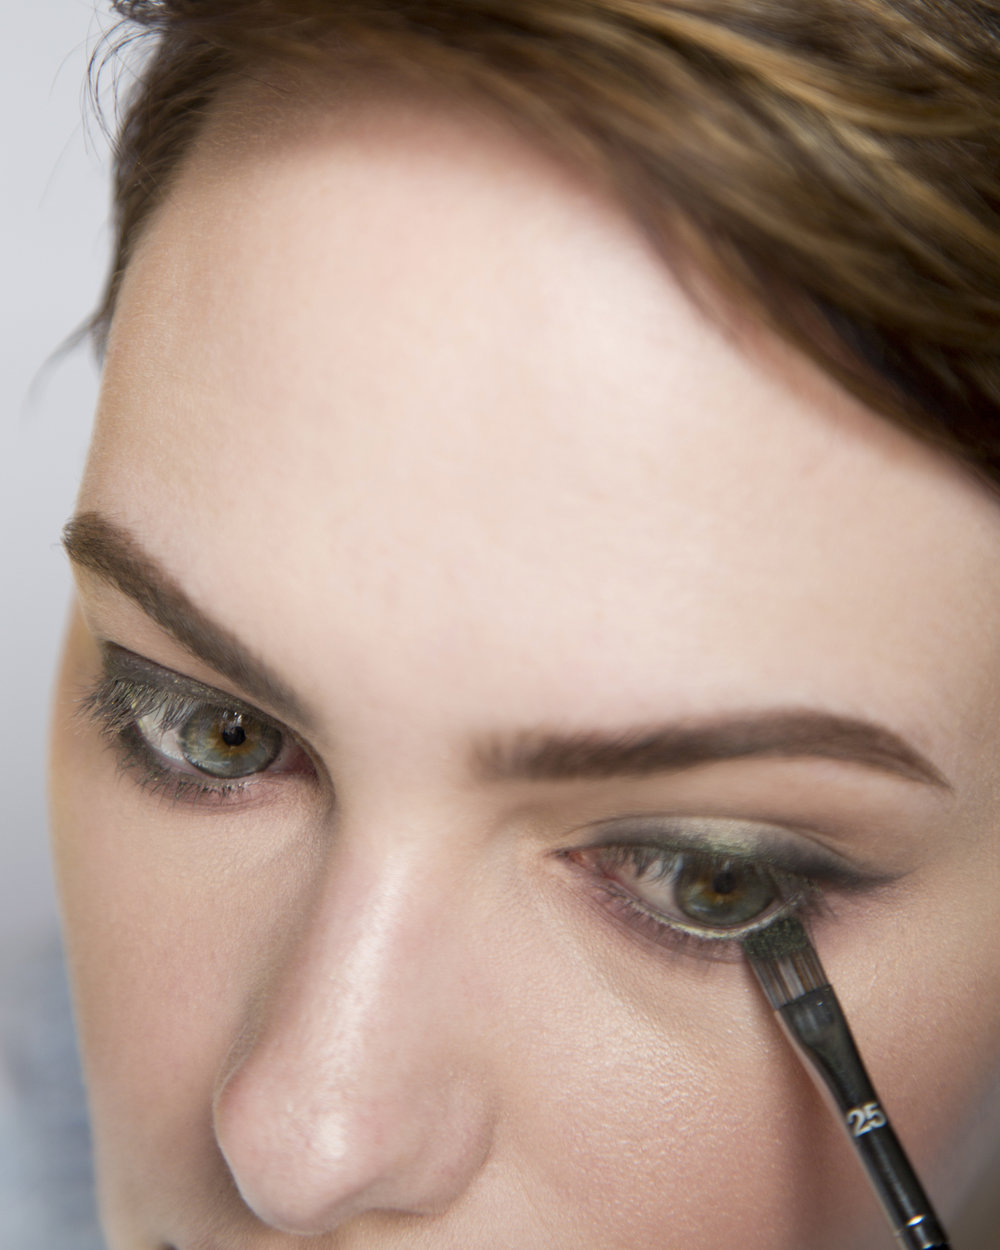 More green eyeshadow! I went back in with the green shade on a flat liner brush (could also use an angled liner brush) just under the lashes to bring the green down a little bit and blend it into the mauves to marry the shadows together.